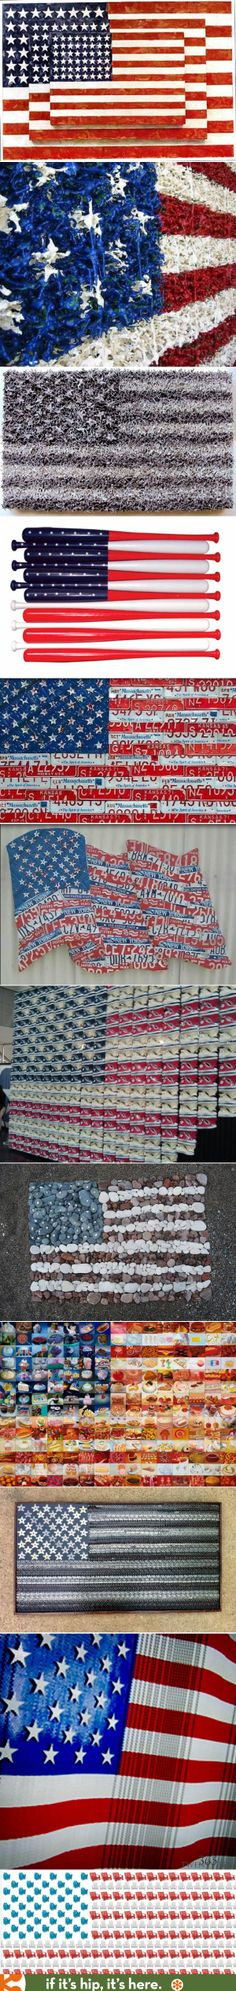 Awesome Artistic Interpretations of the American Flag.